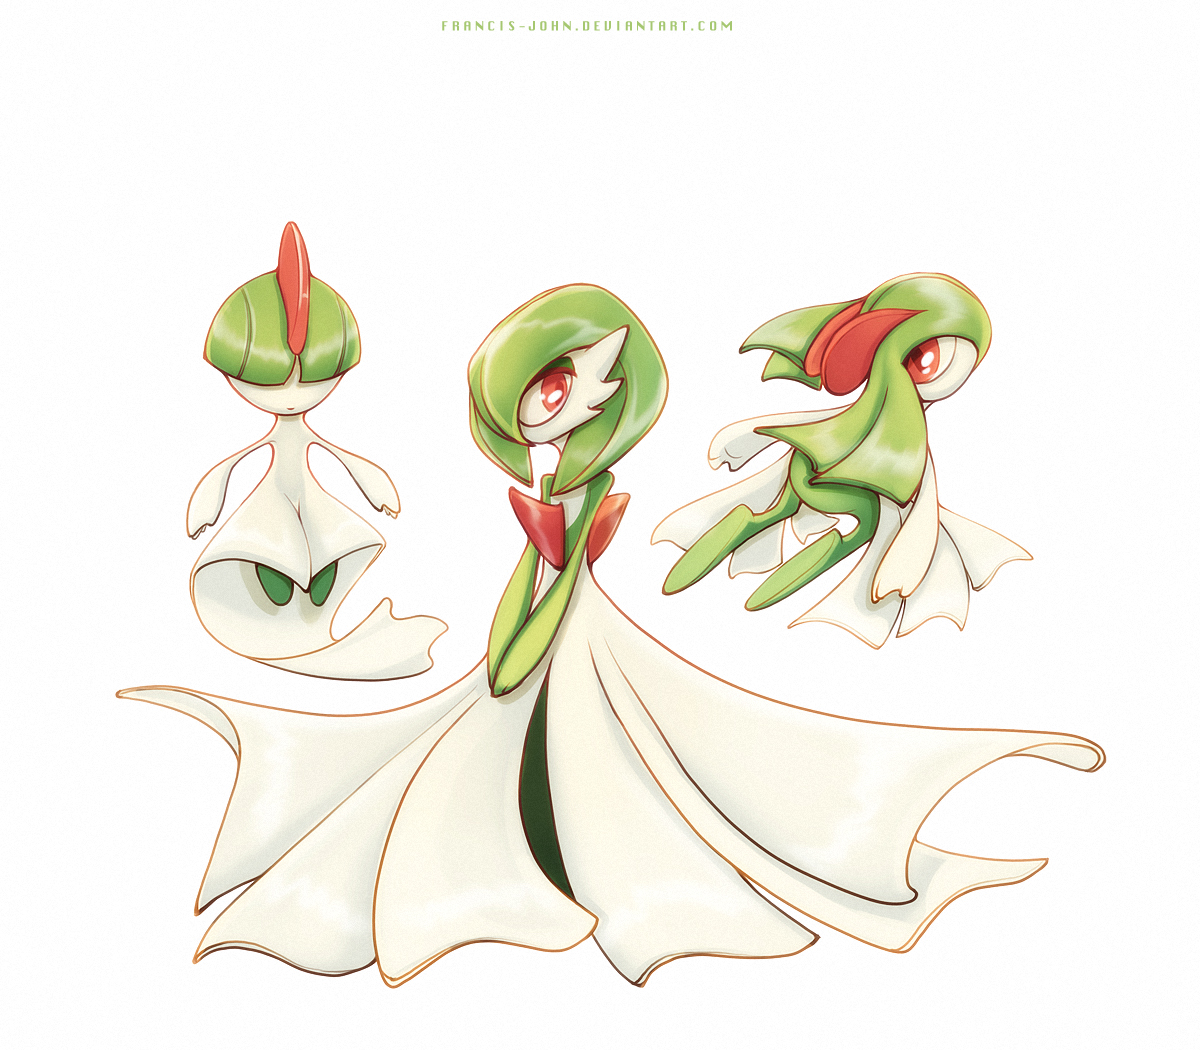 Ralts Gardevoir And Kirlia By Francis John On Deviantart